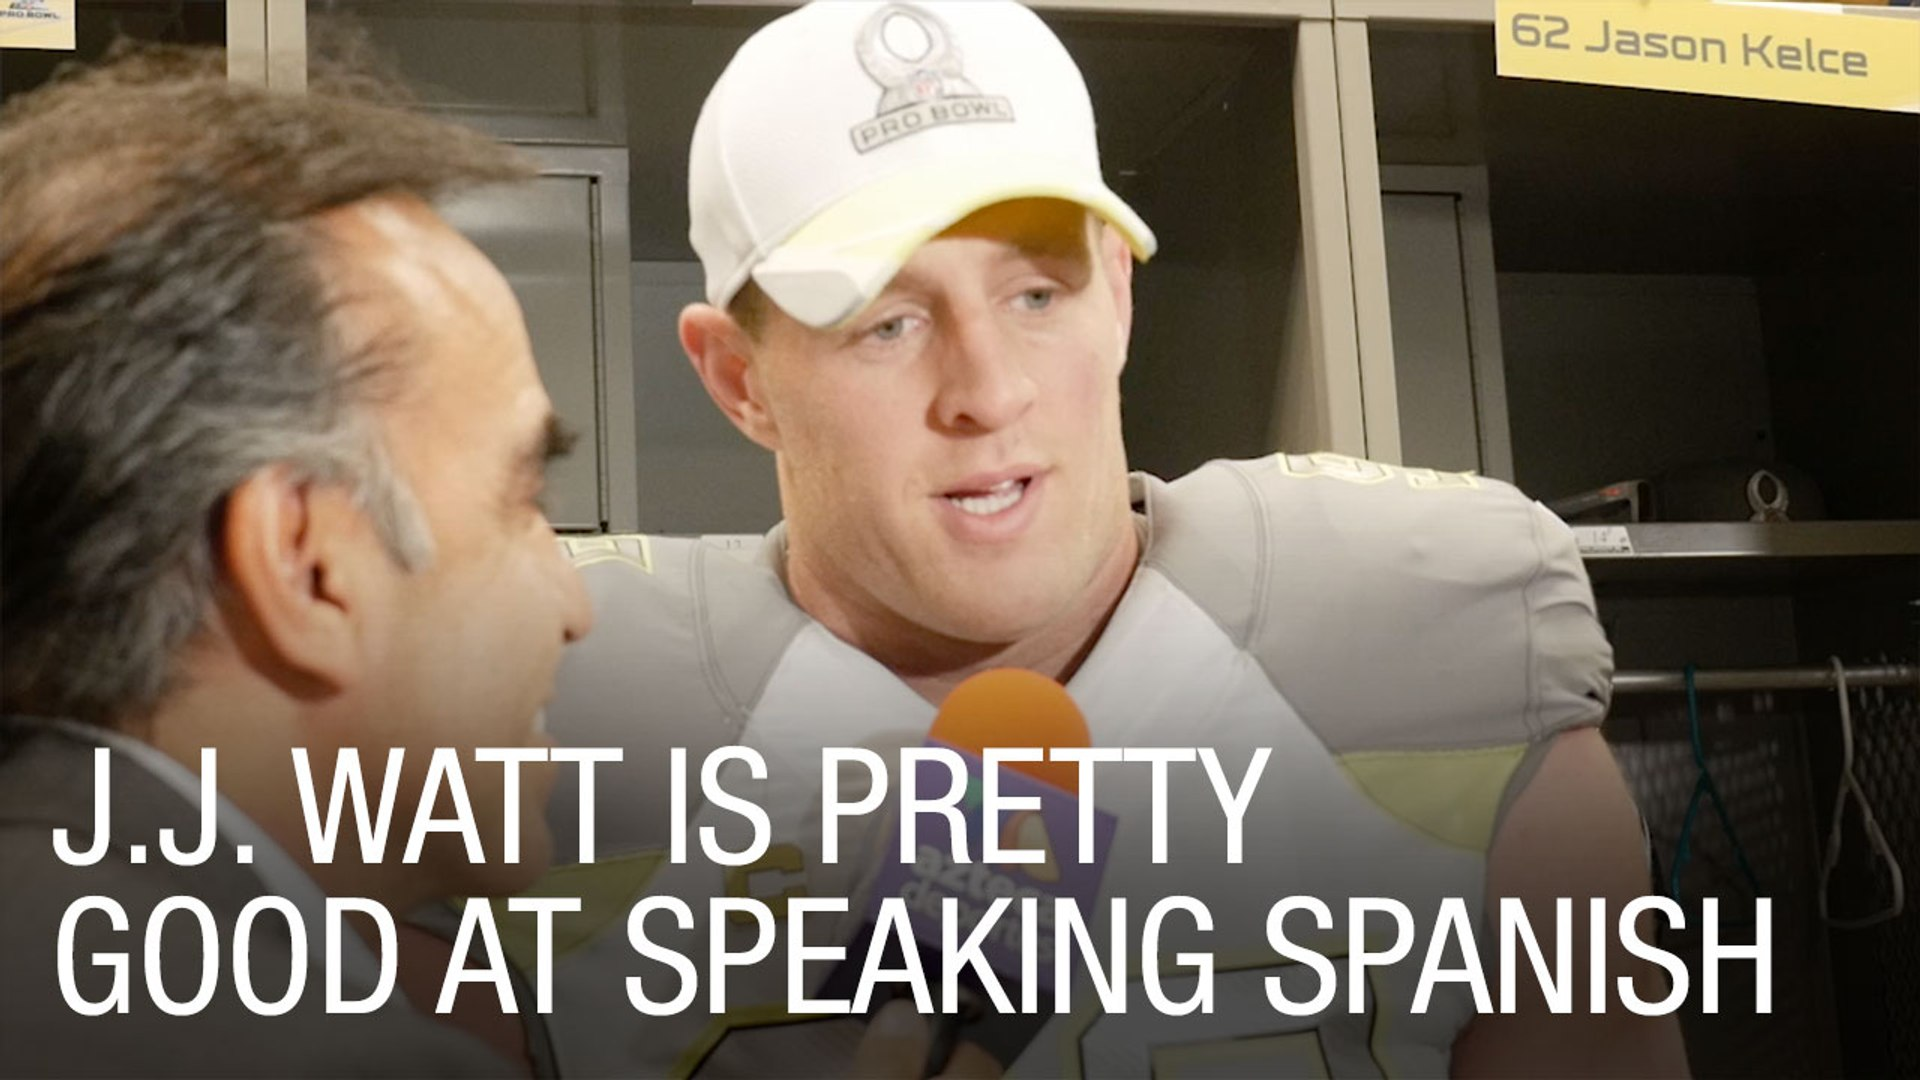 J.J. Watt is Pretty Good at Speaking Spanish